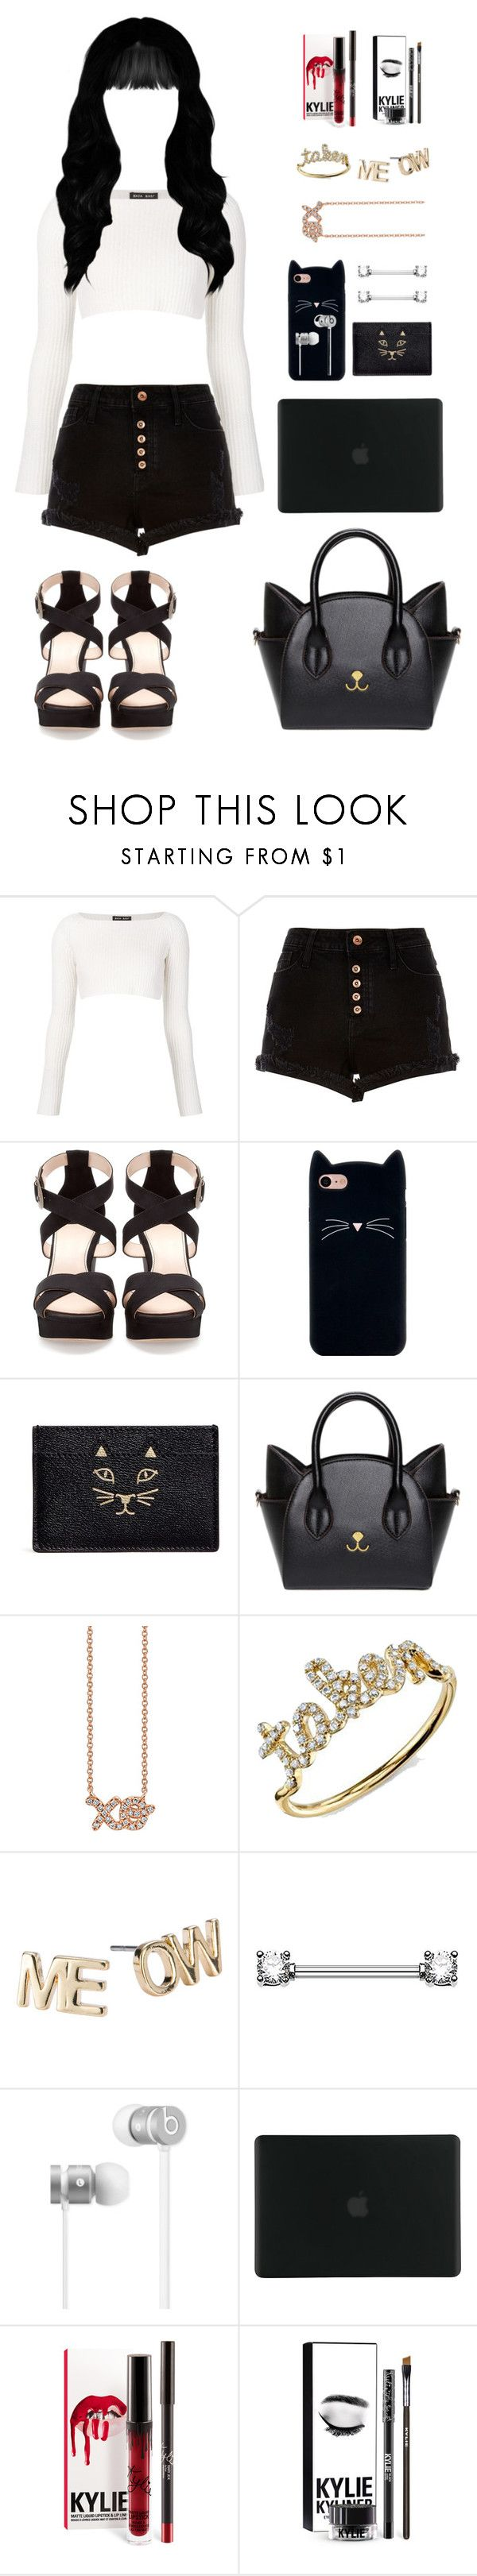 """"""". . ."""" by afetgatter ❤ liked on Polyvore featuring Baja East, River Island, Pull&Bear, Charlotte Olympia, Sydney Evan, Pet Friends, Beats by Dr. Dre and Tucano"""